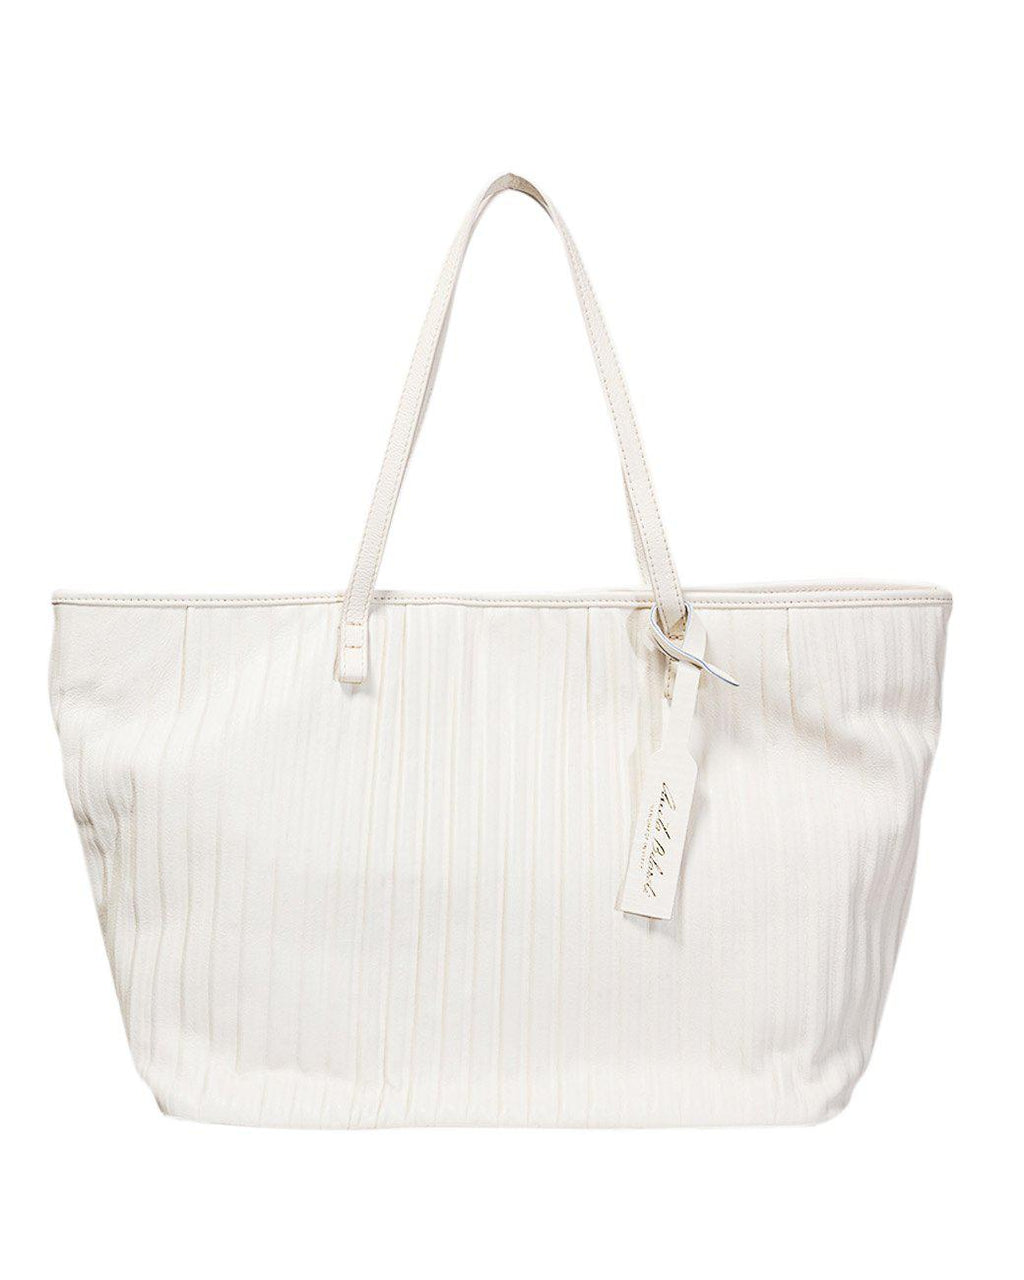 BIG NAPPA PLEATED SHOPPING BAG